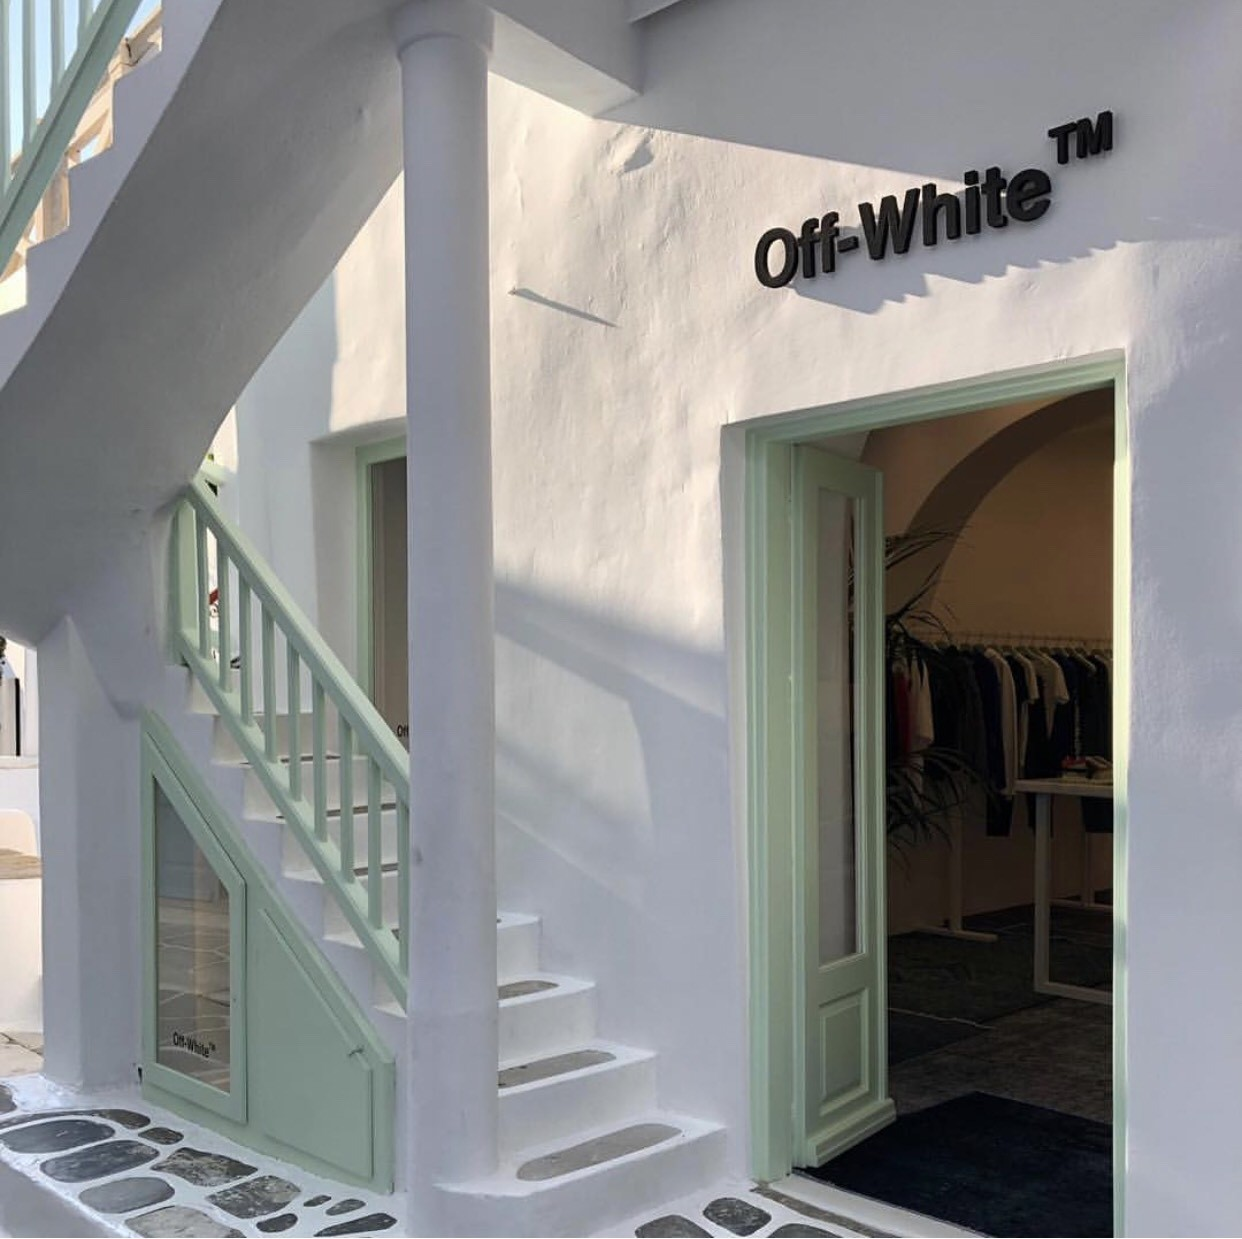 ▲mykonos精品。(圖/翻攝自Burberry、 Louis Vuitton、IG@off___white___mykonos、品牌提供)